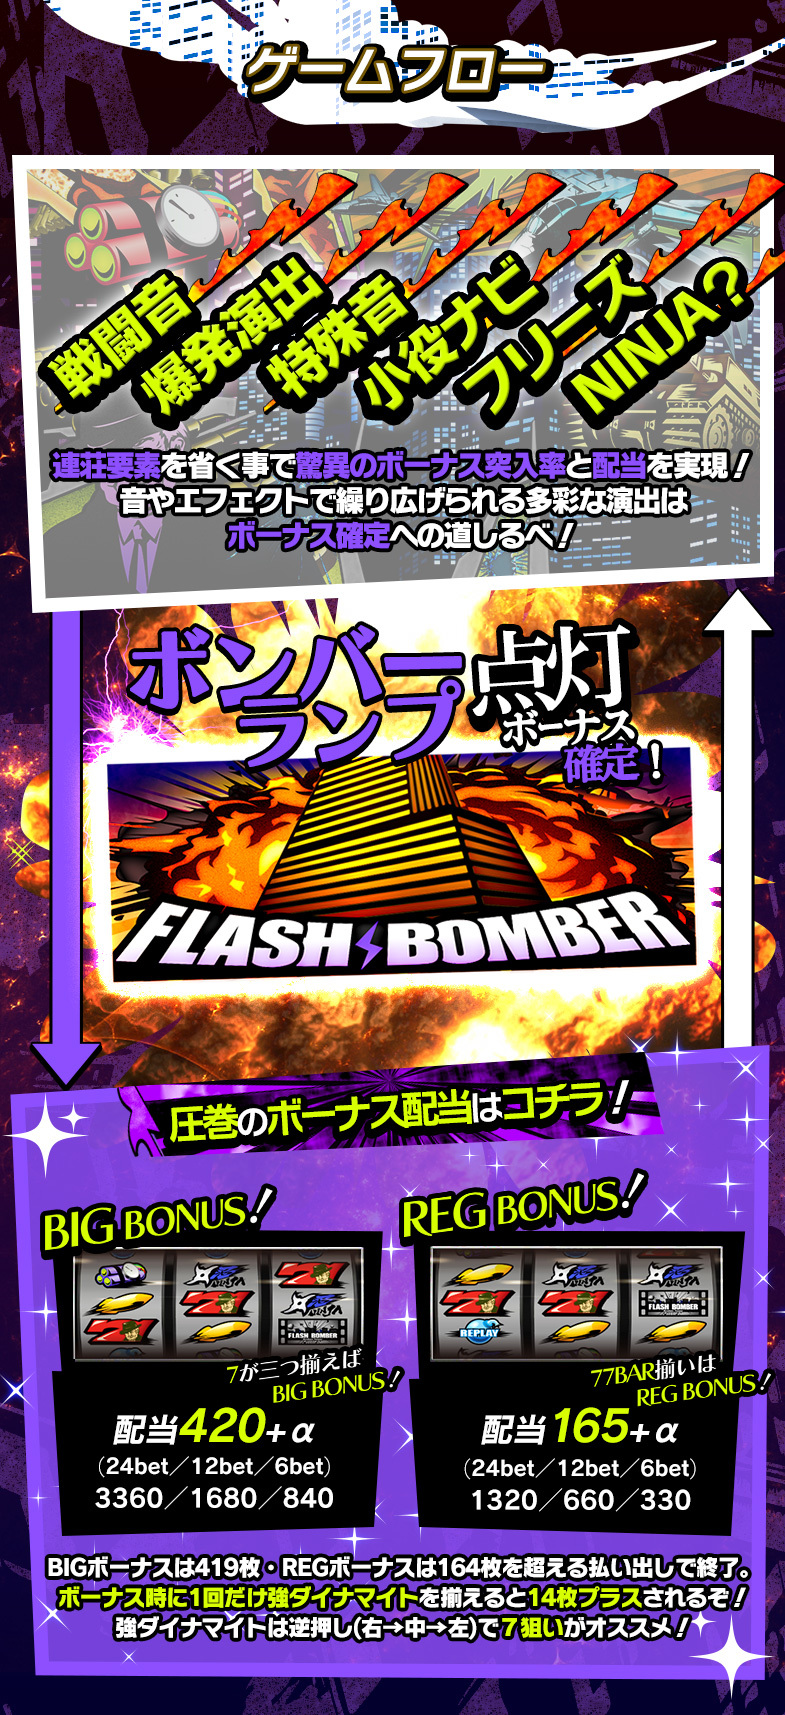 FLASH BOMBER 特徴